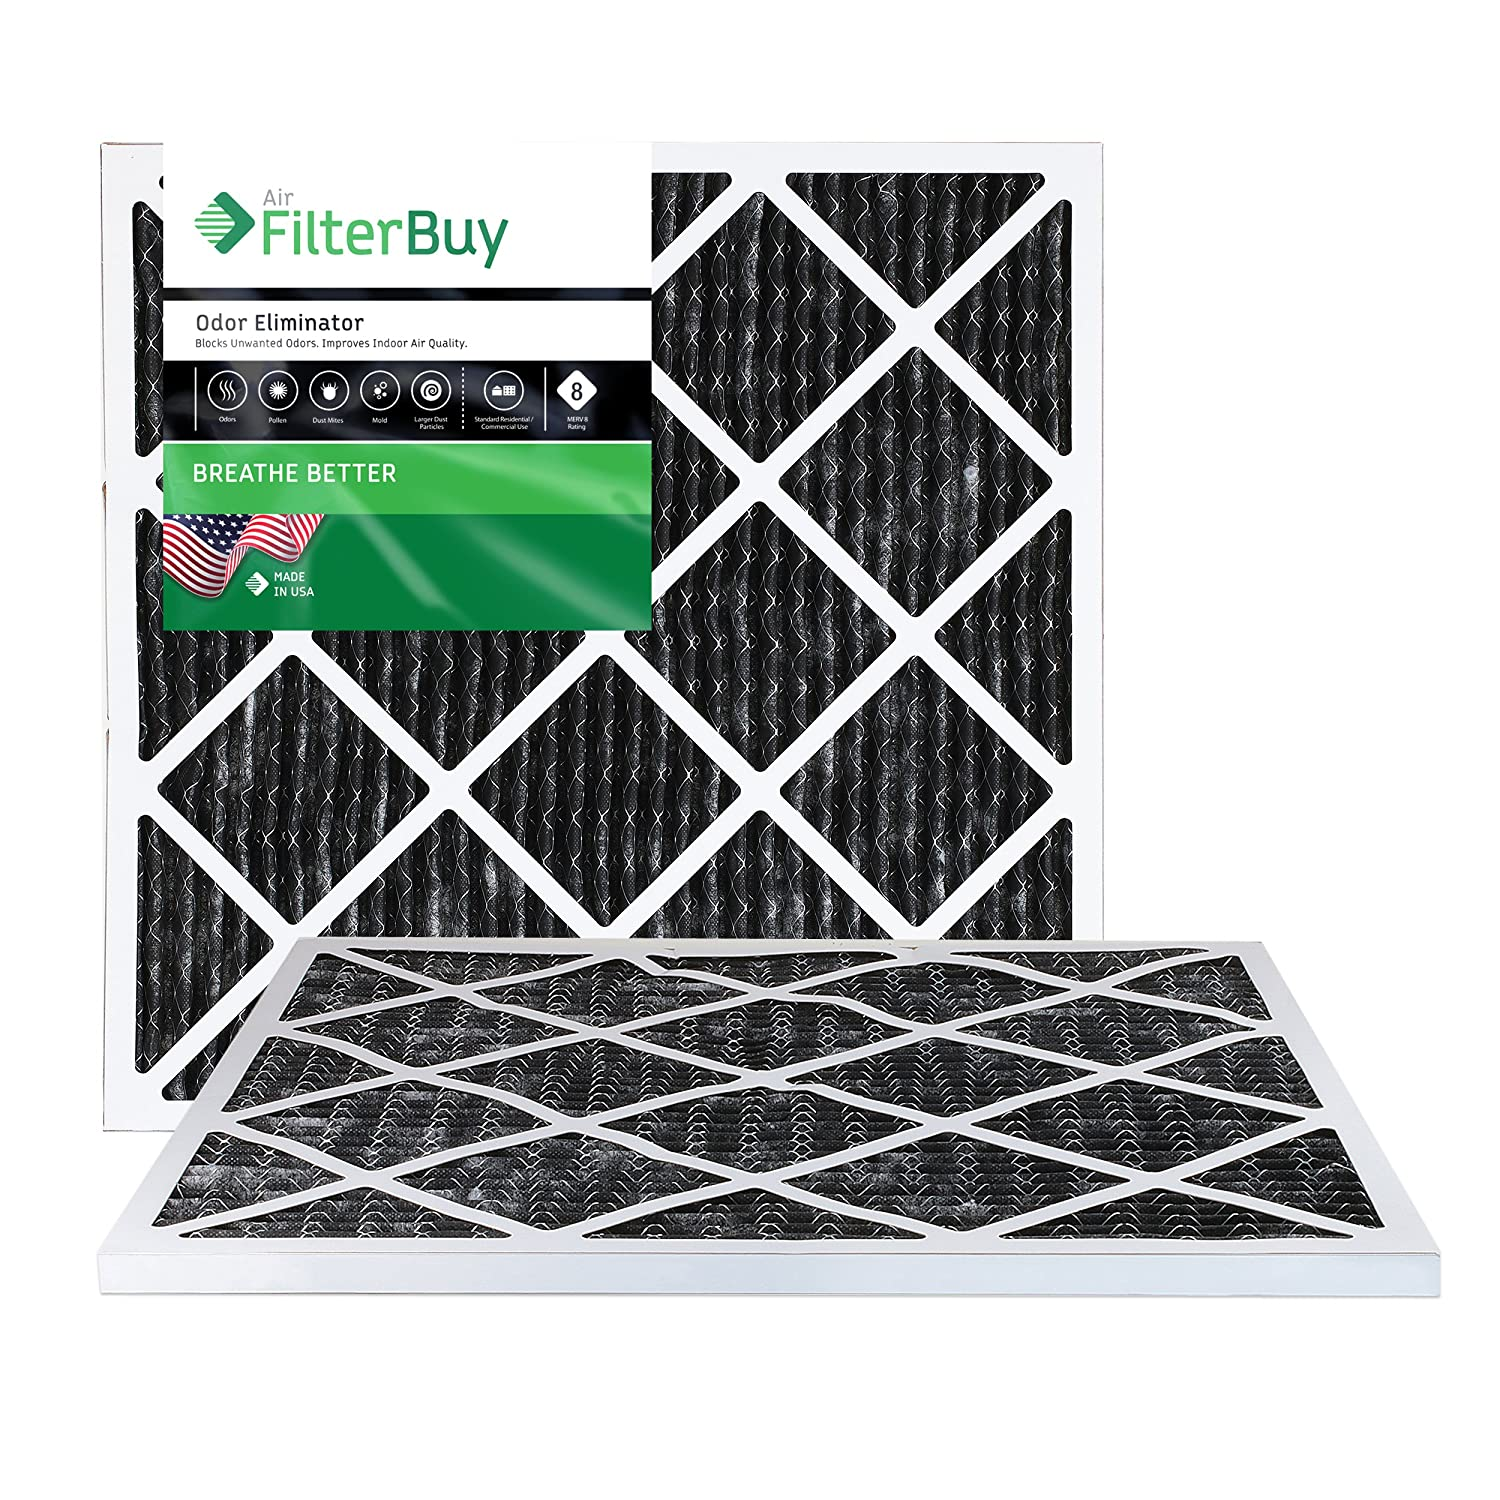 1. FilterBuy Allergen Odor Eliminator 14x18x1 MERV 8 Pleated AC Furnace Air Filter with Activated Carbon - Pack of 2-14x18x1